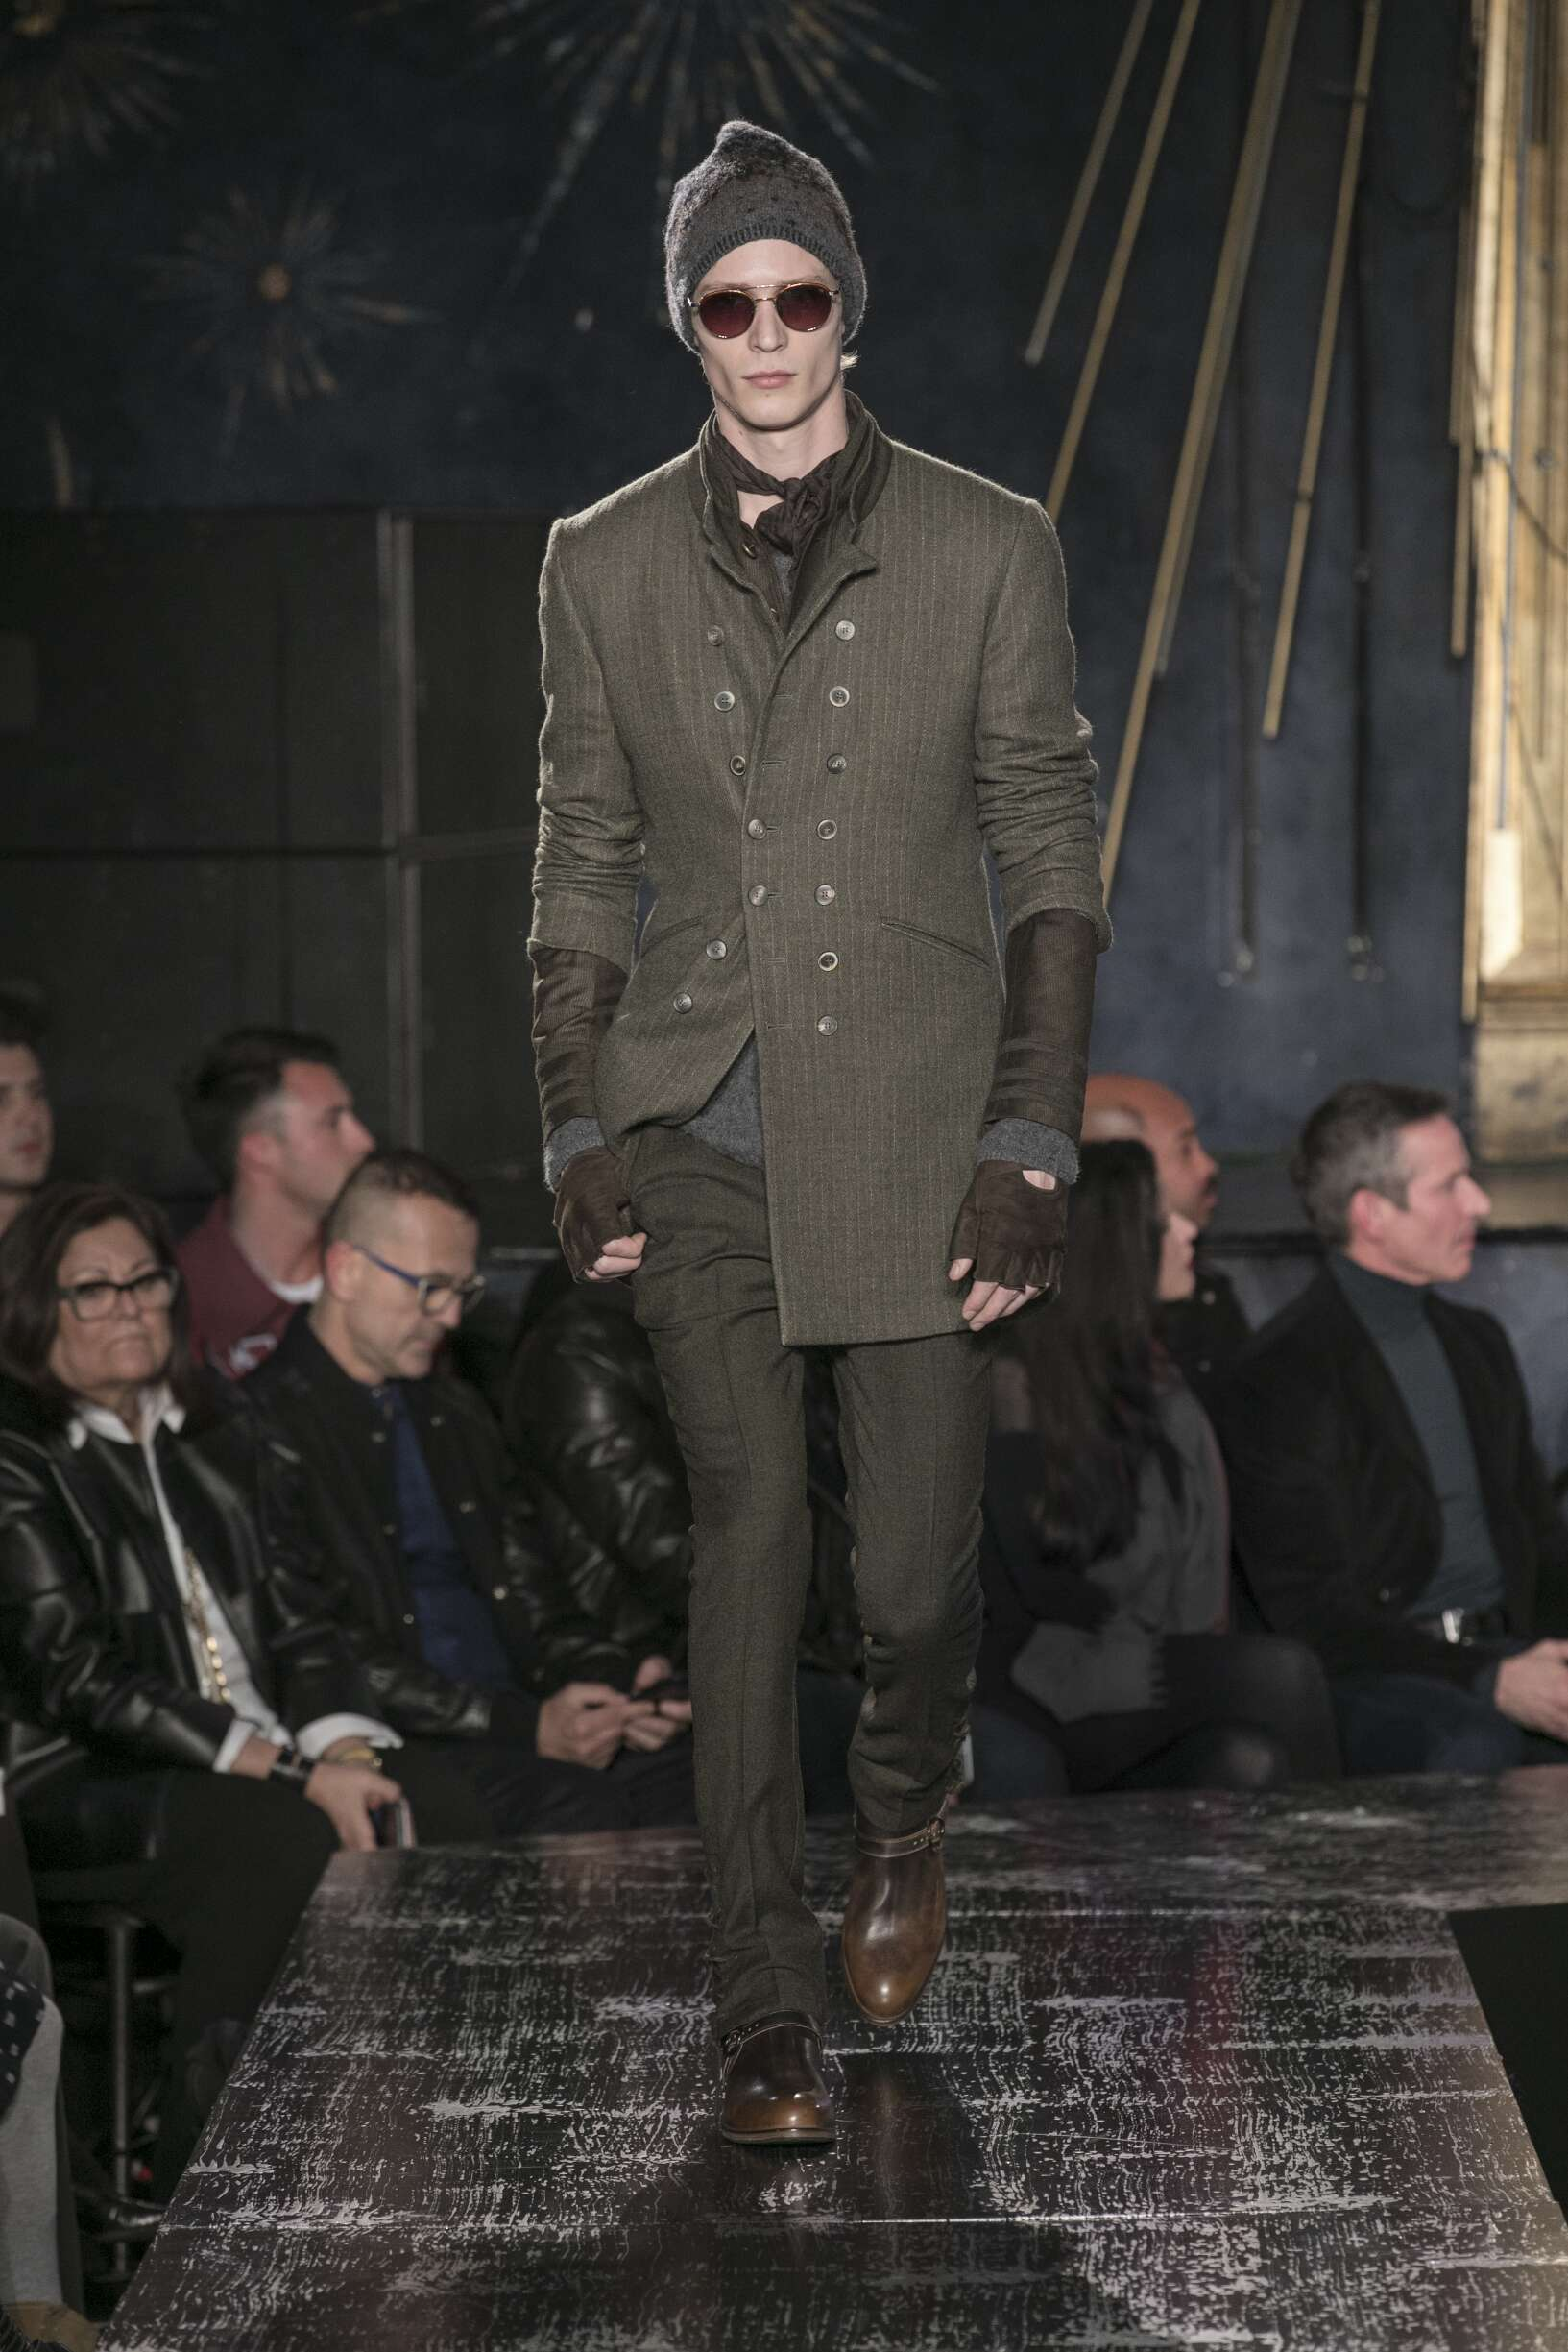 Catwalk John Varvatos Winter 2017